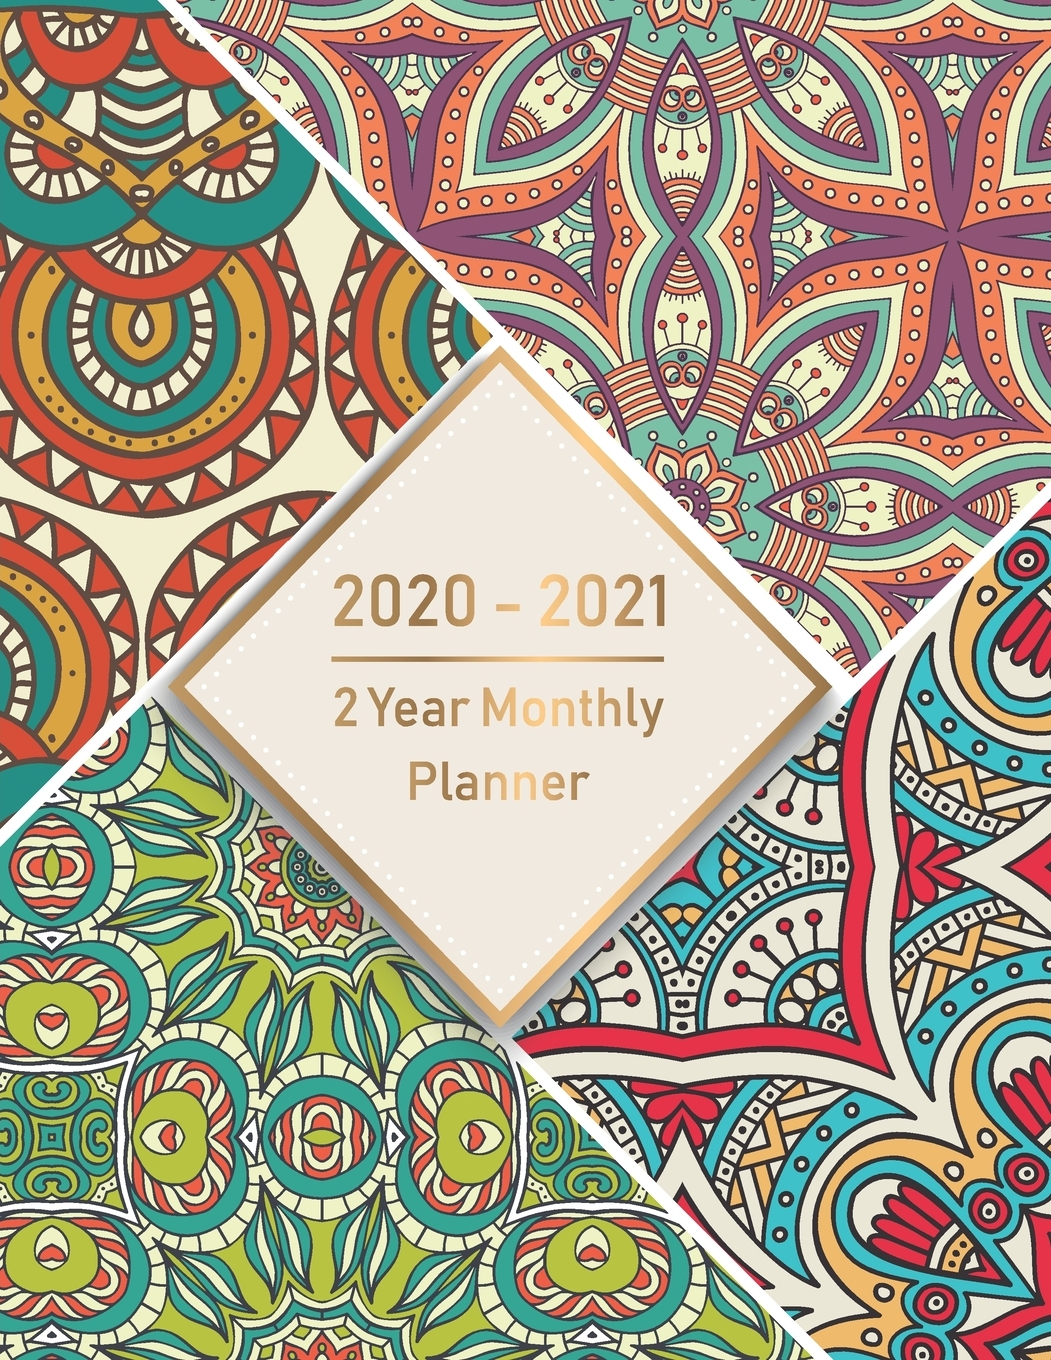 2020-2021 Monthly Planner: 2 Year Monthly Planner 2020-2021: Monthly  Schedule Organizer, Agenda Planner For The Next Two Years, 24 Months  Calendar, inside 2021-2021 Two Year Planner: 2 Year